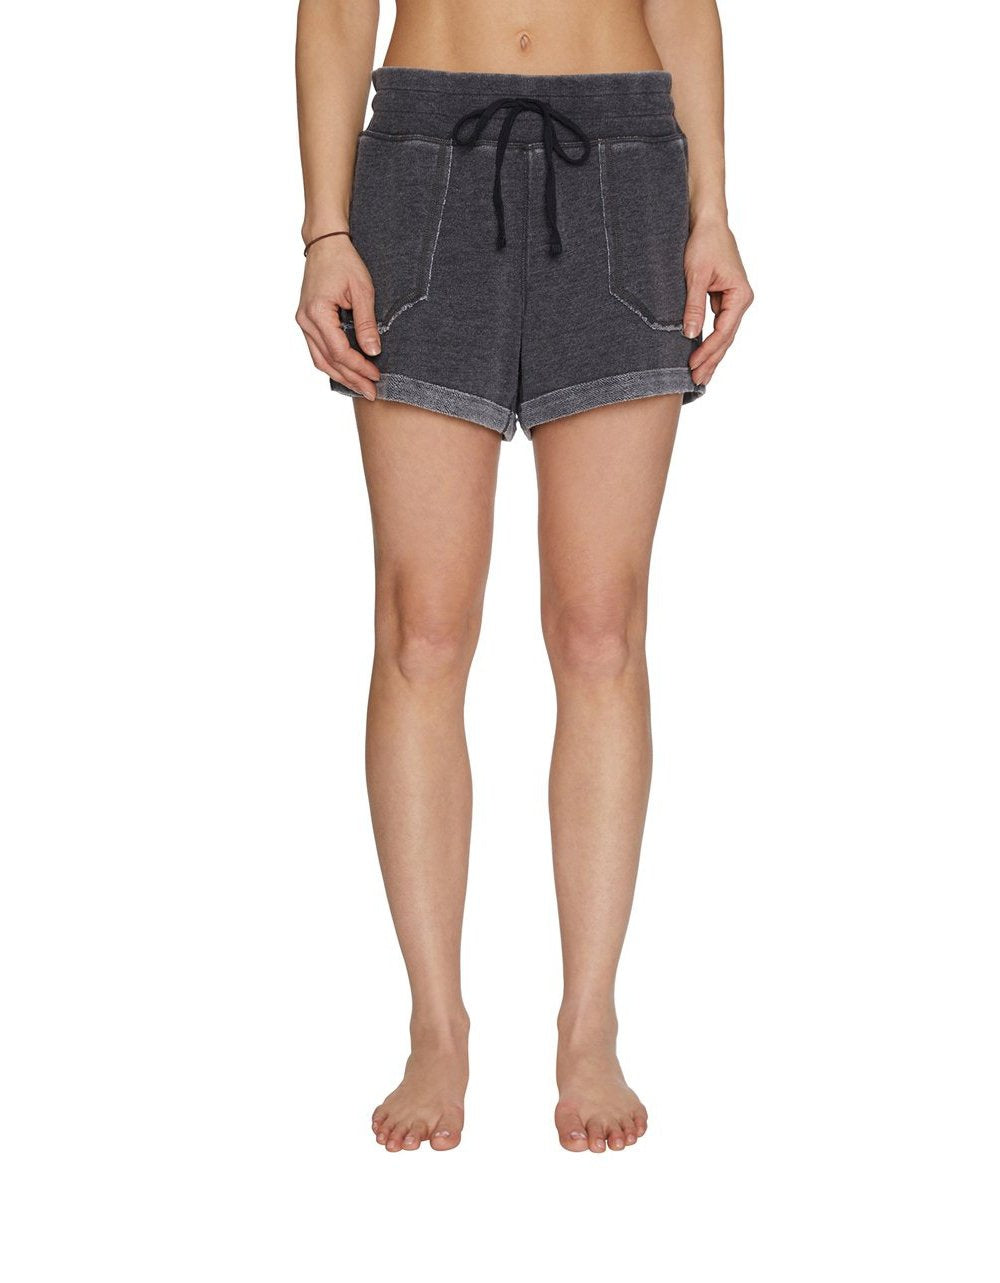 DISTRESSED ROLL HEM SHORT BLACK - APPAREL - Betsey Johnson